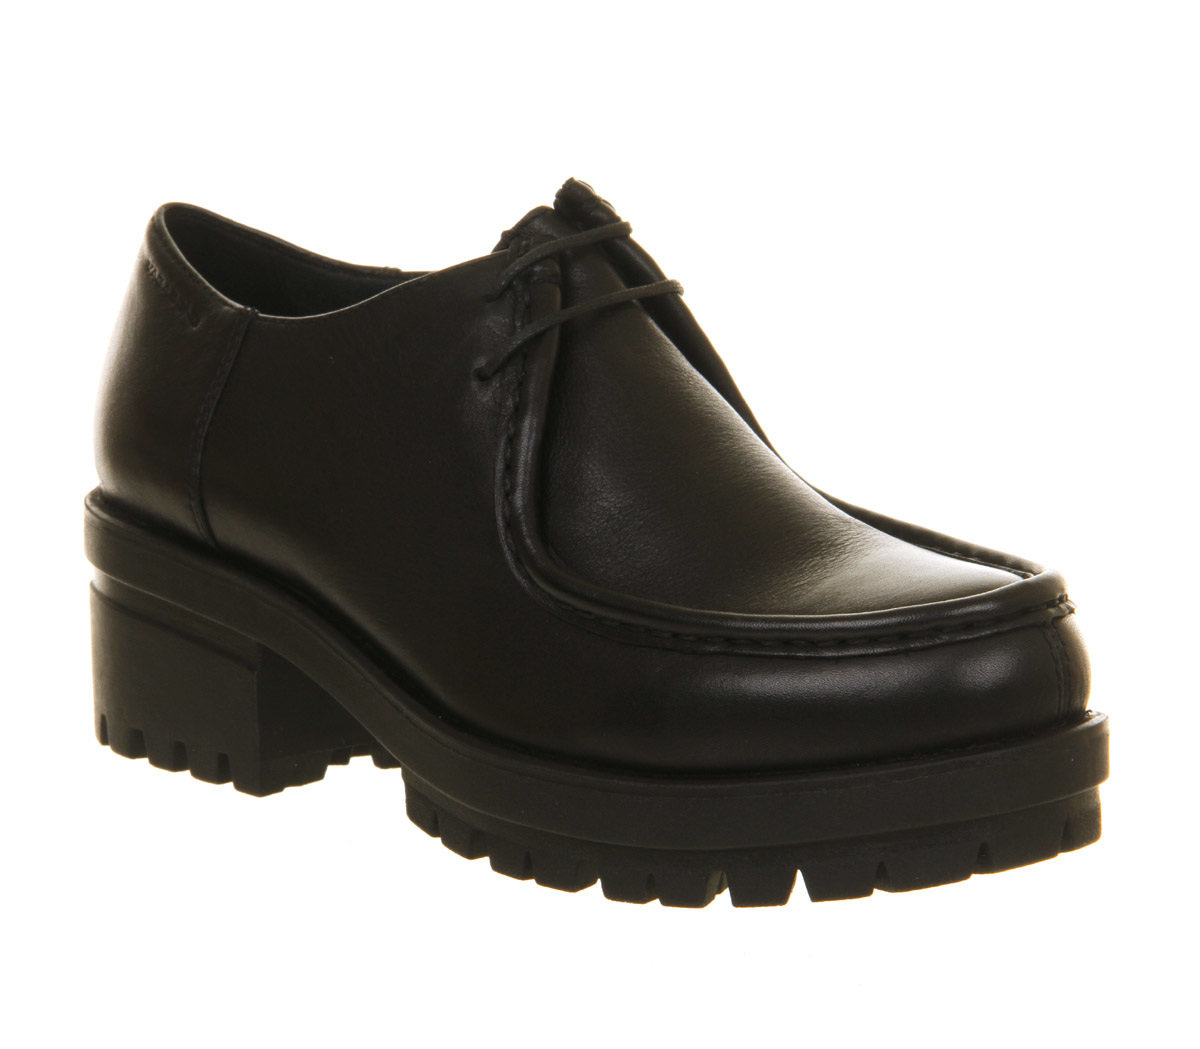 Vagabond Kayla Shoe In Black | Lyst